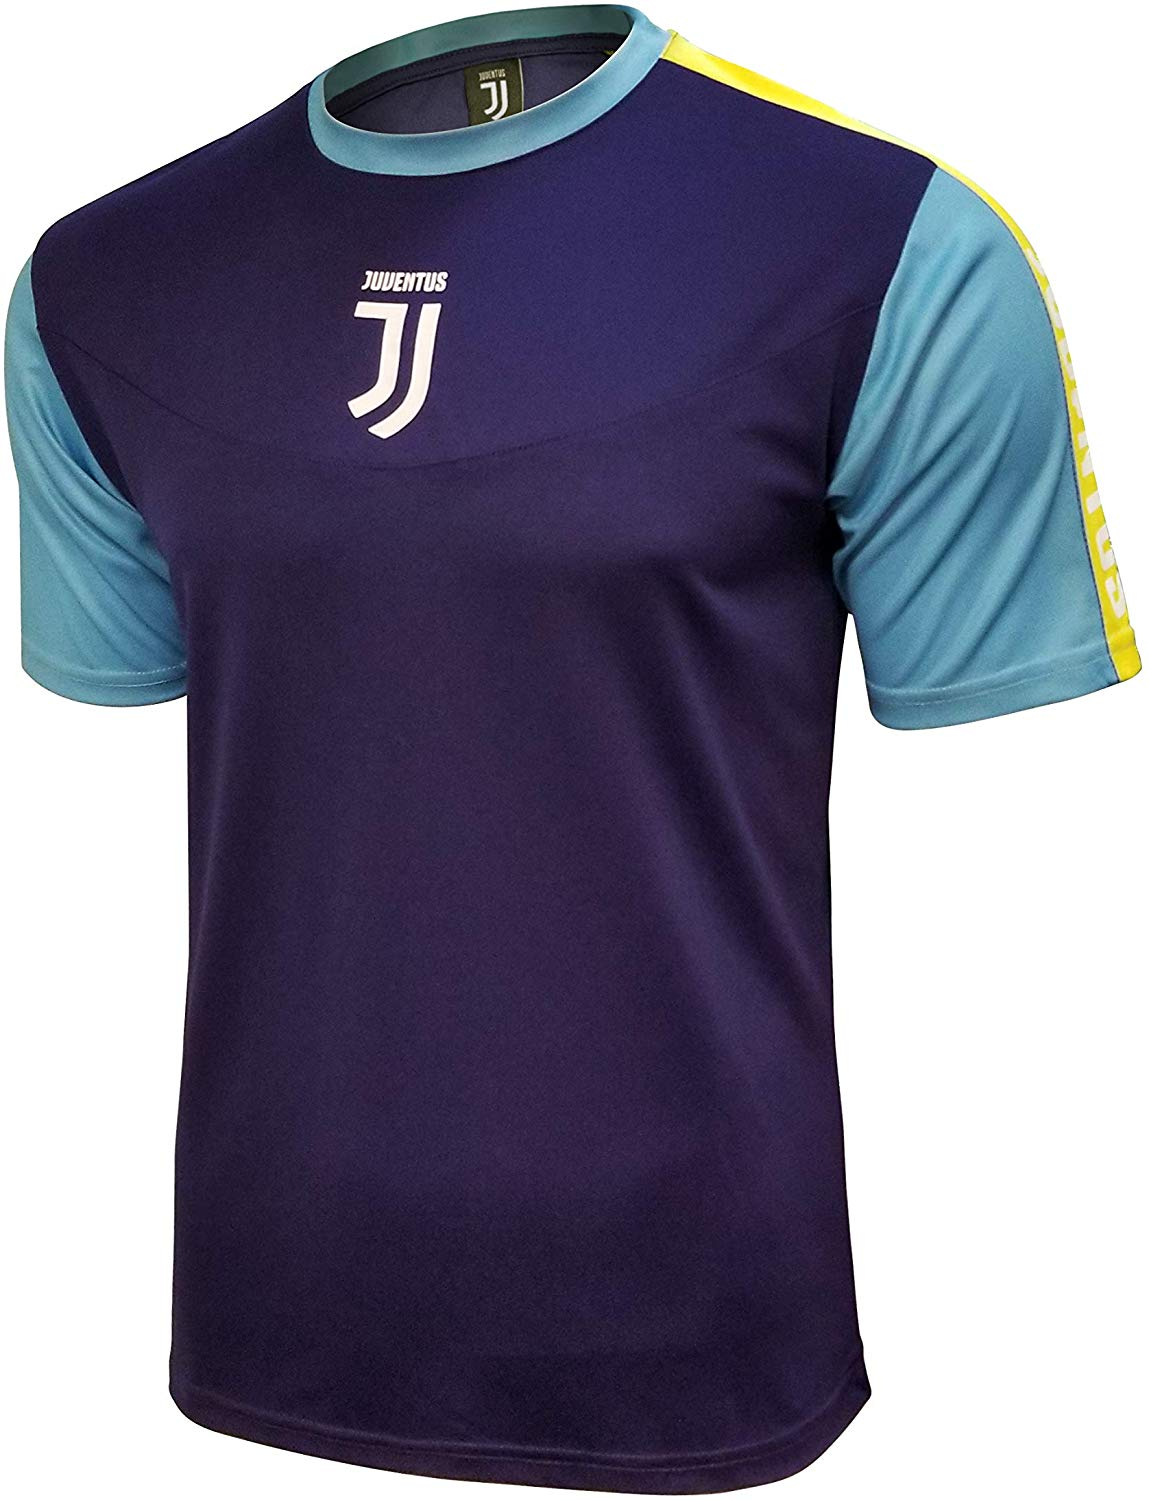 icon sports juventus f c official adult soccer poly shirt jersey 03 large walmart com walmart com walmart